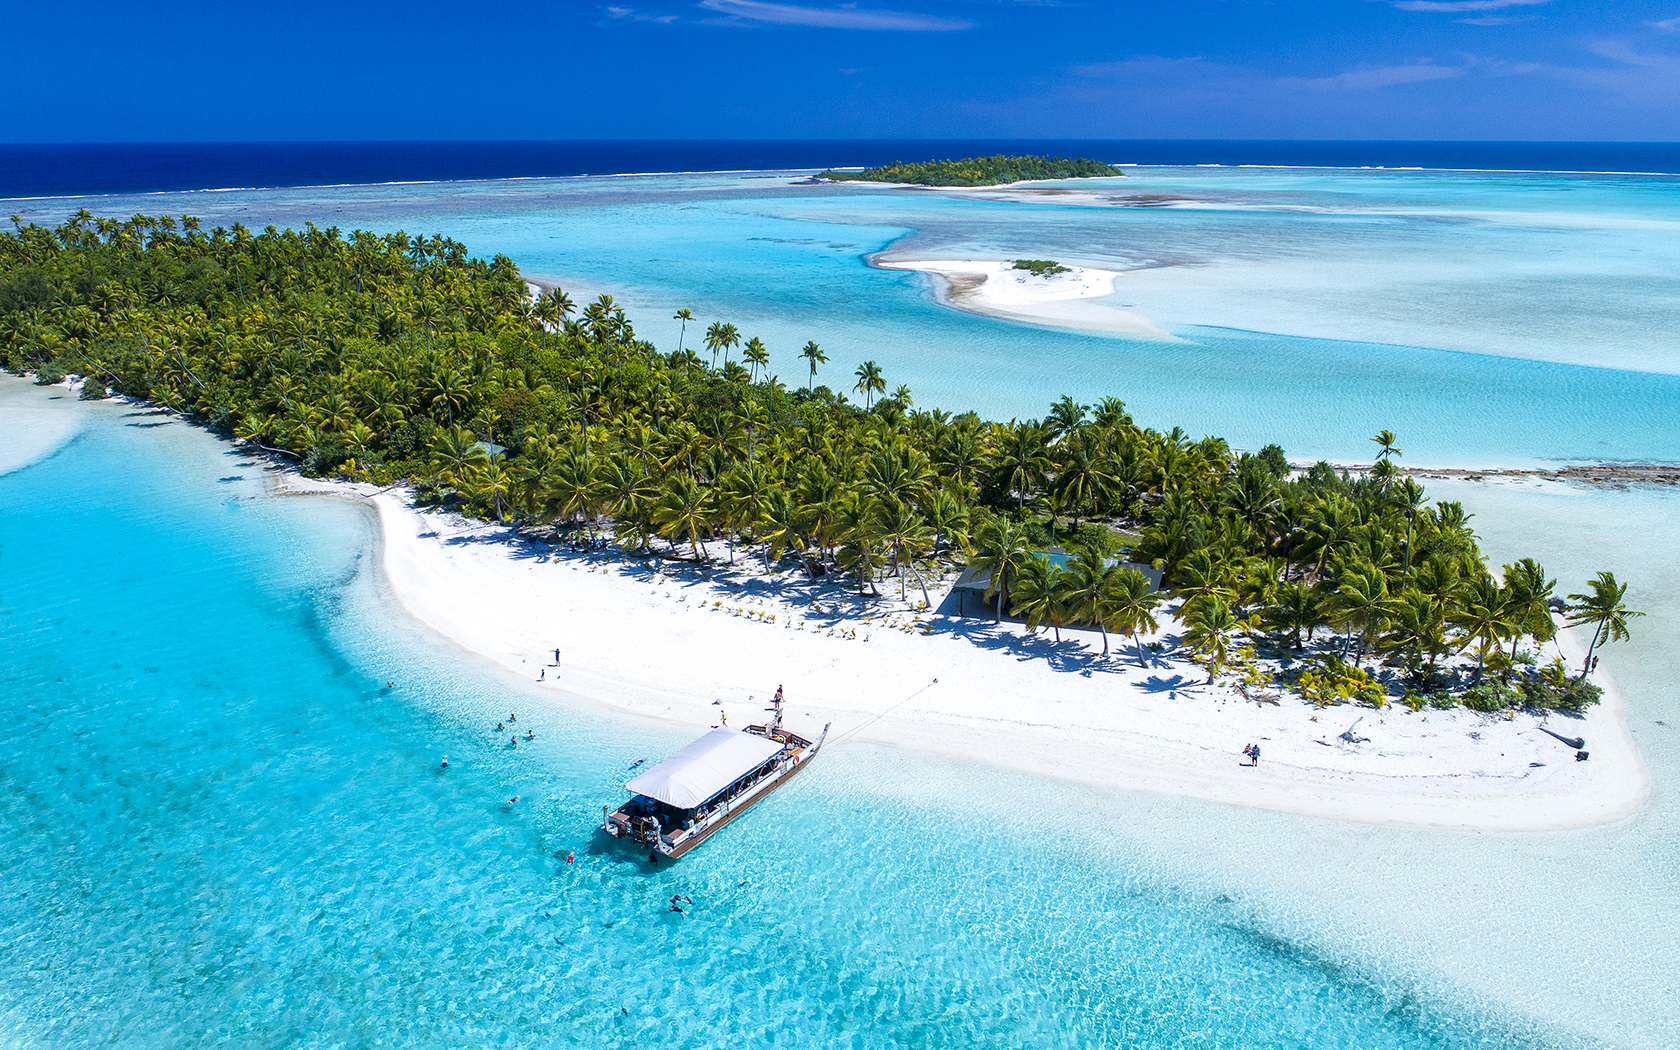 Aitutaki: The Island Paradise Begging To Be On Your Bucket List